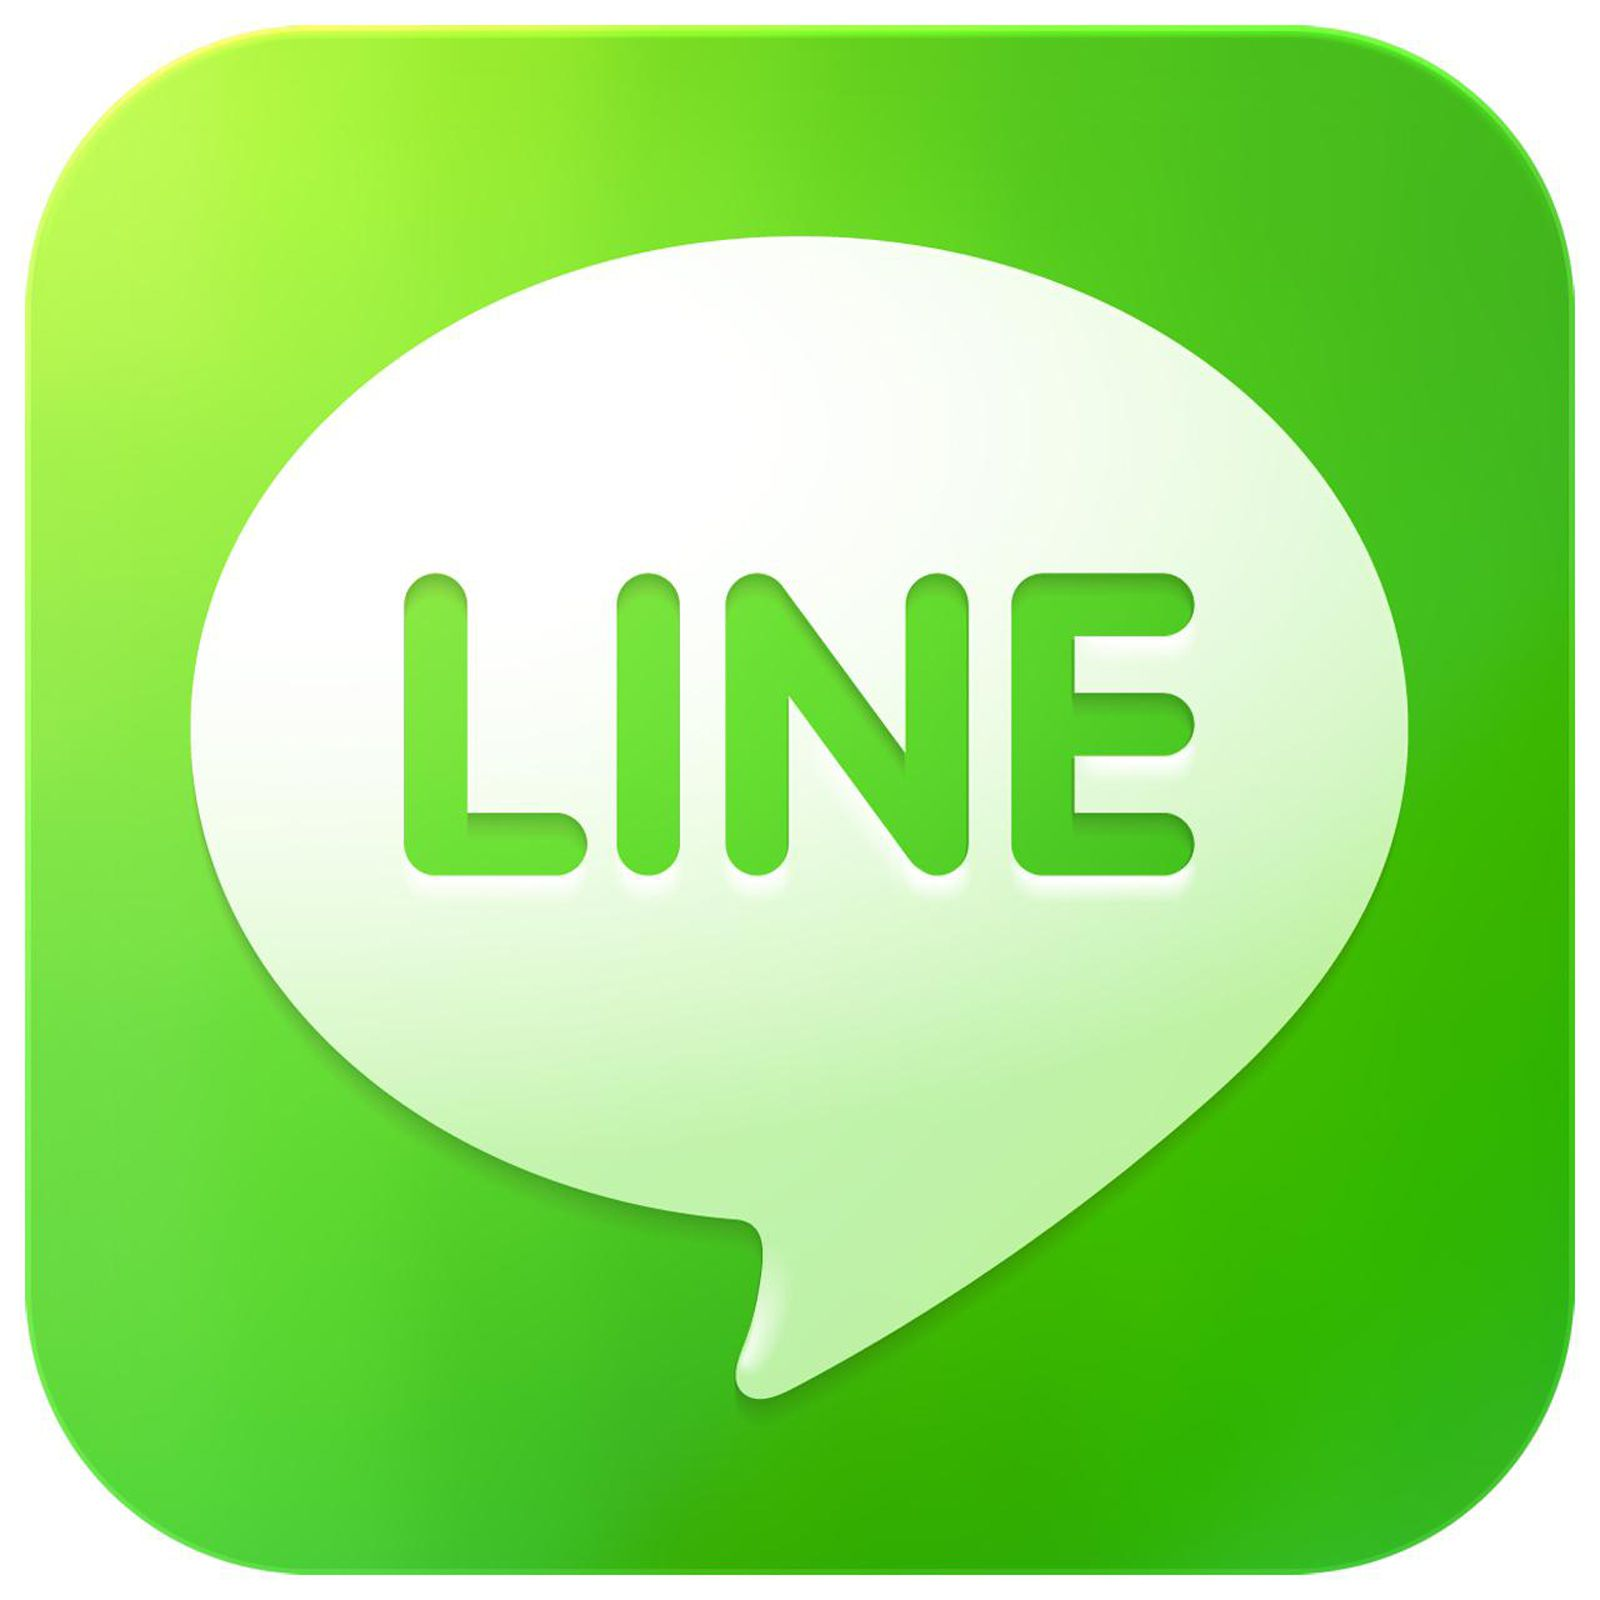 A Review of the Line App for Free Calls and More